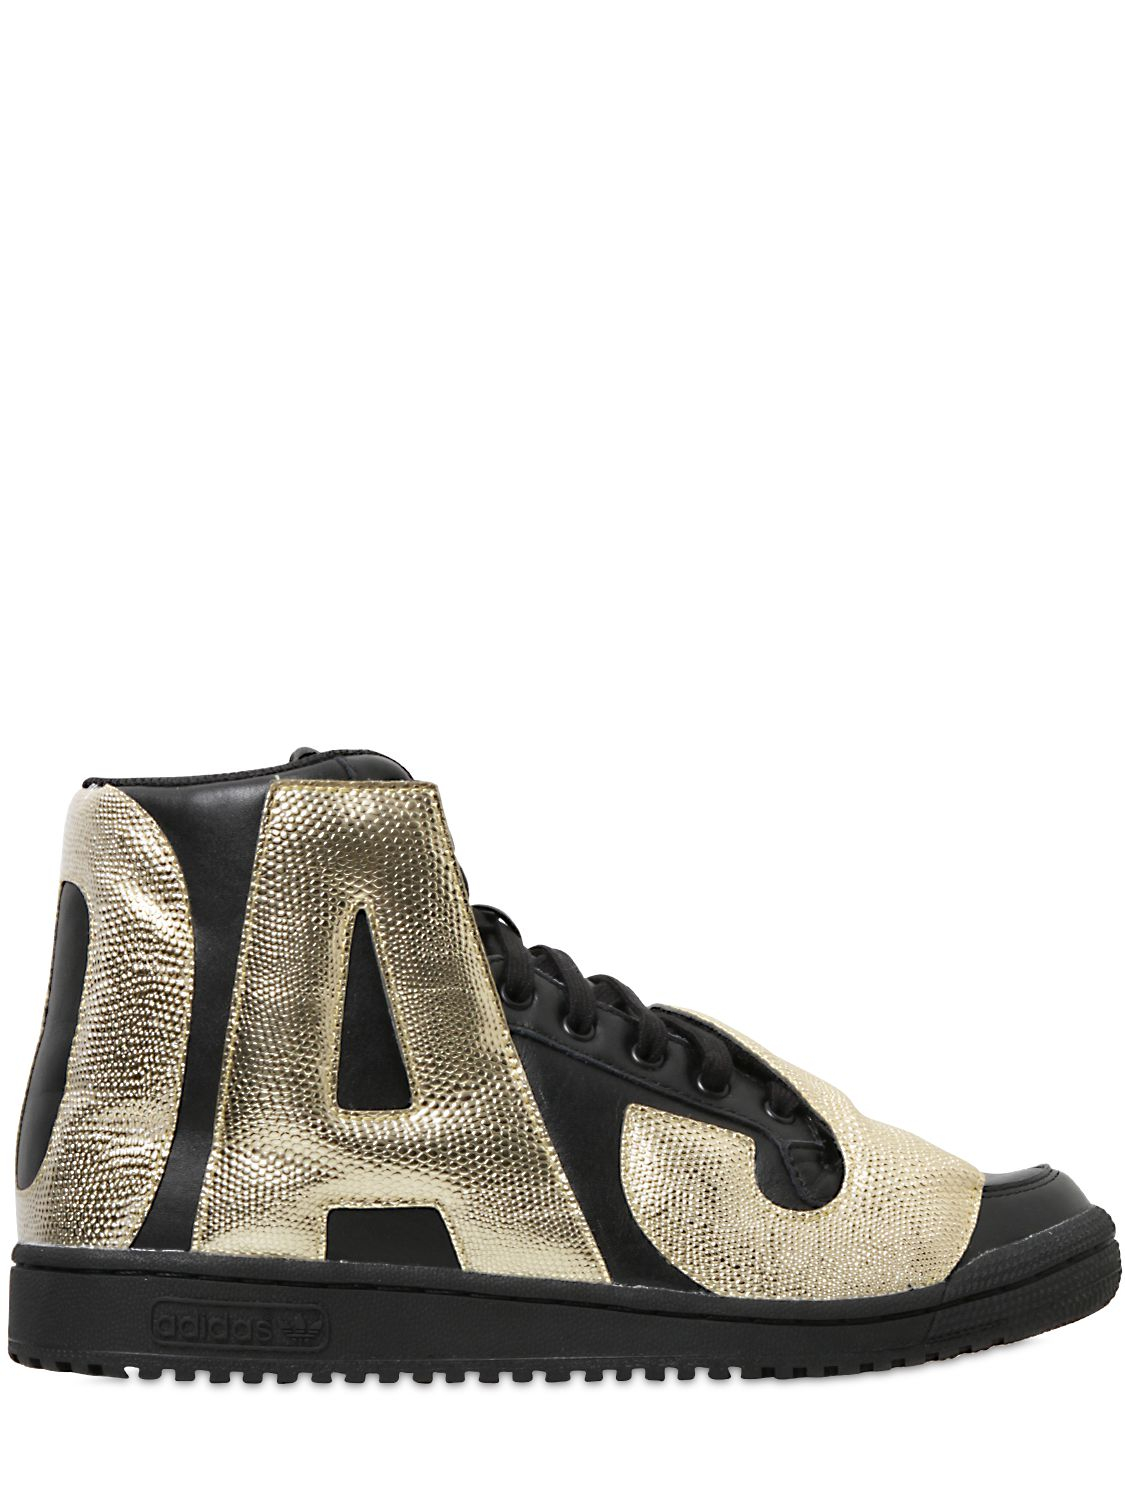 adidas shoes high tops gold. gallery adidas shoes high tops gold